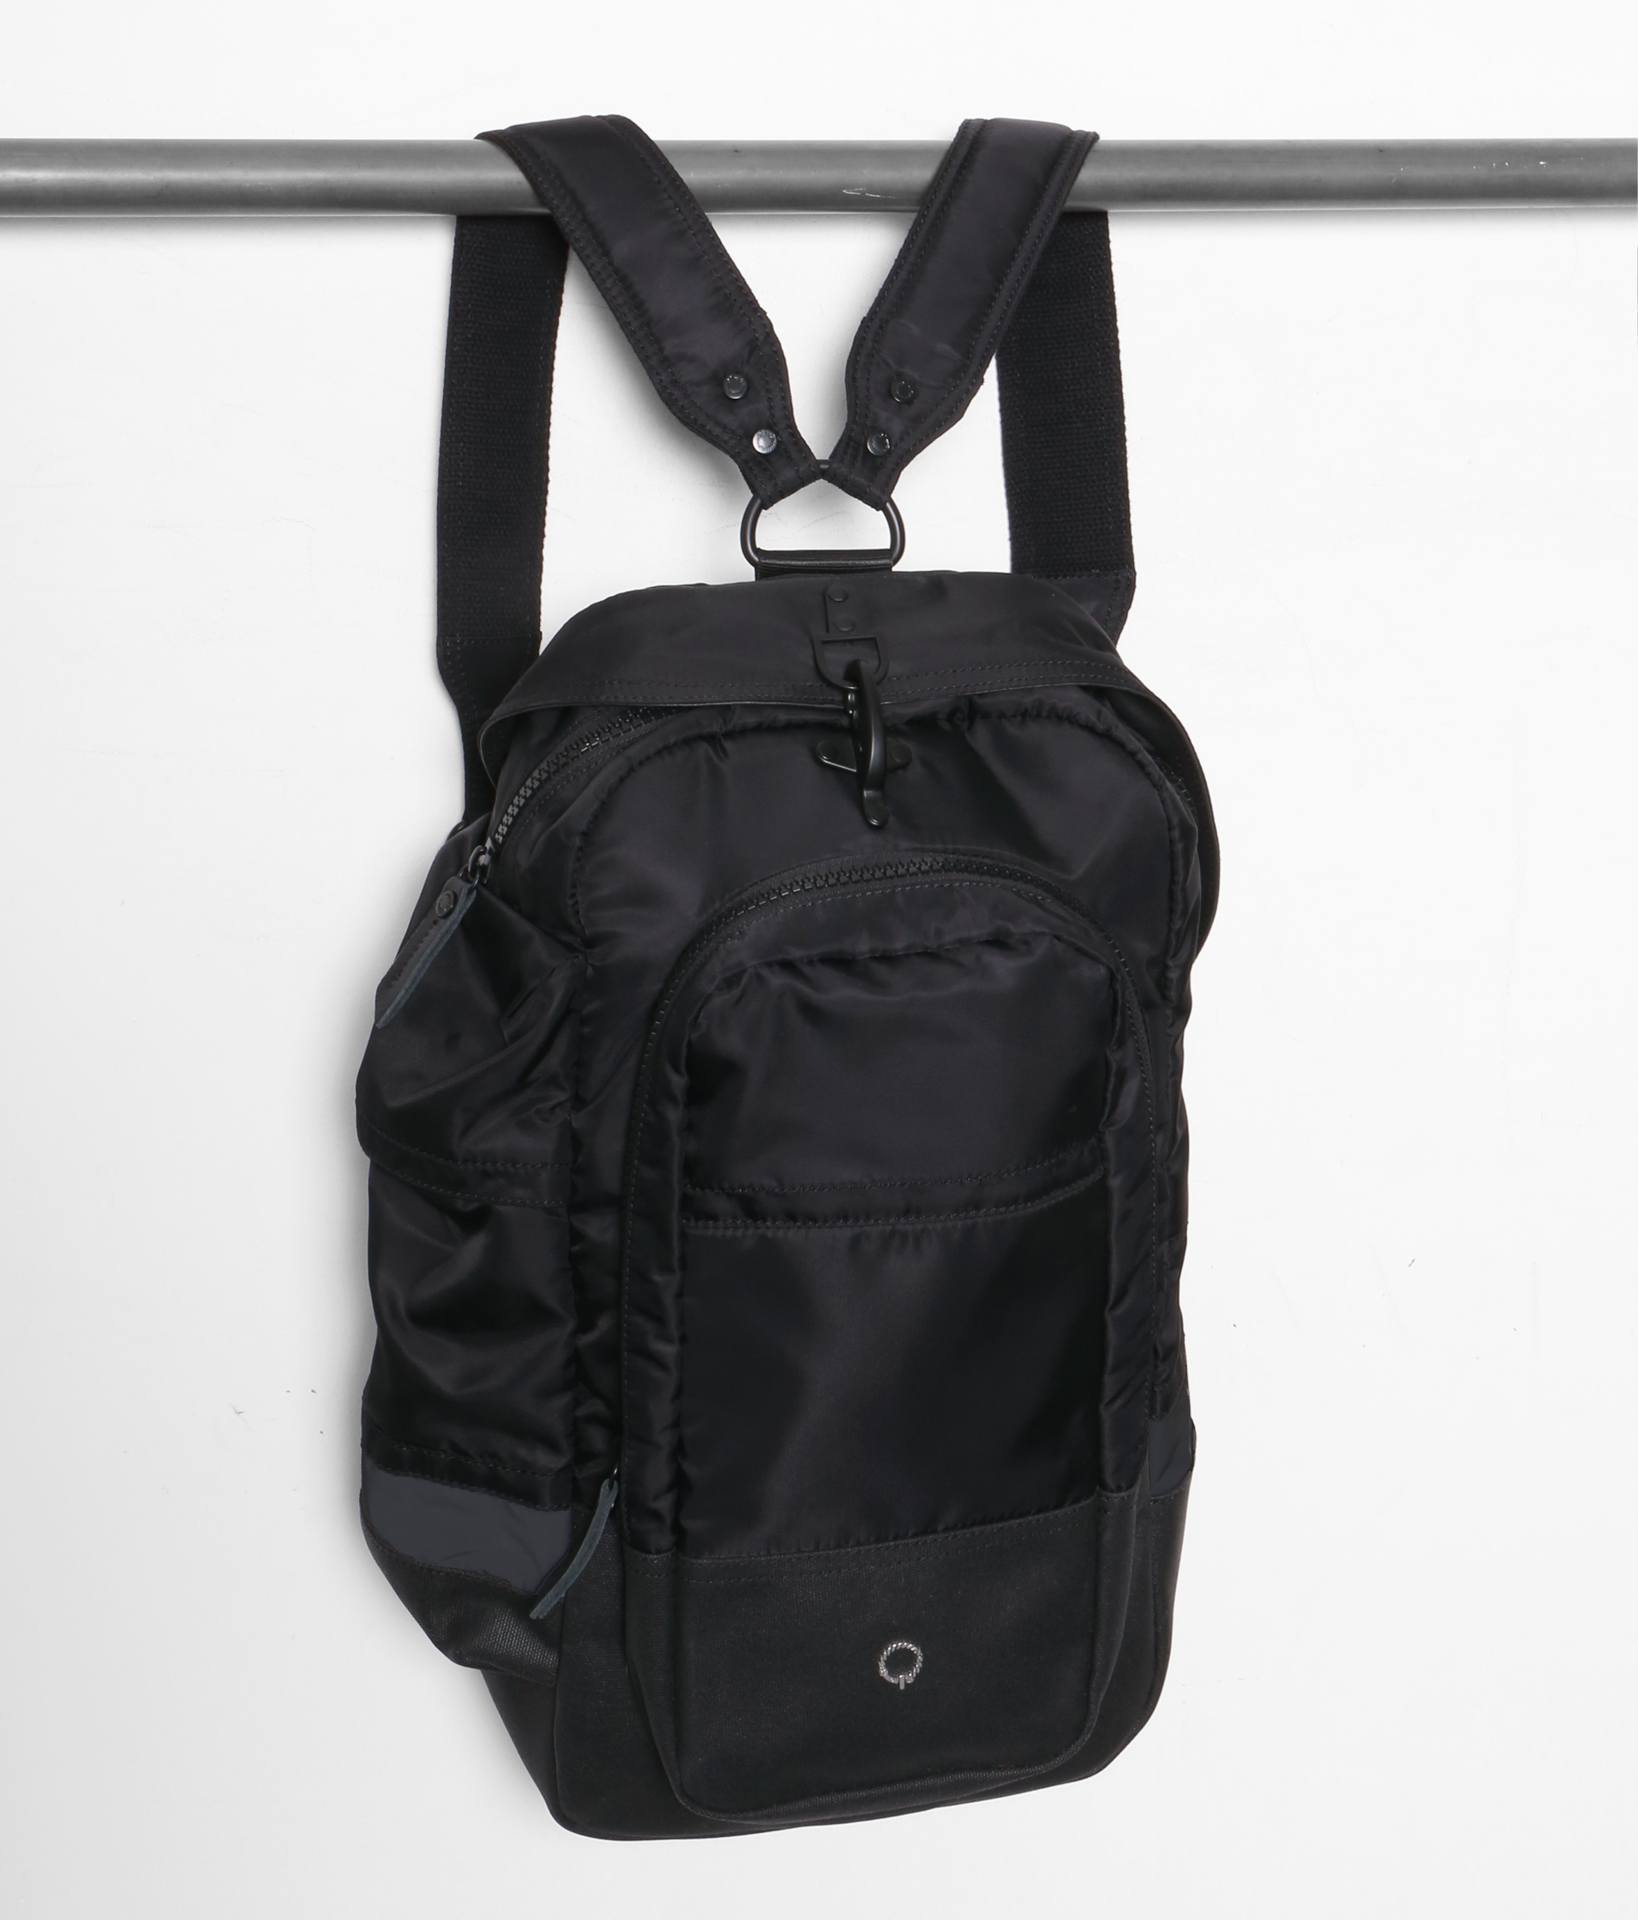 Backpack clipart laptop bag. Stighlorgan zip top backpacks